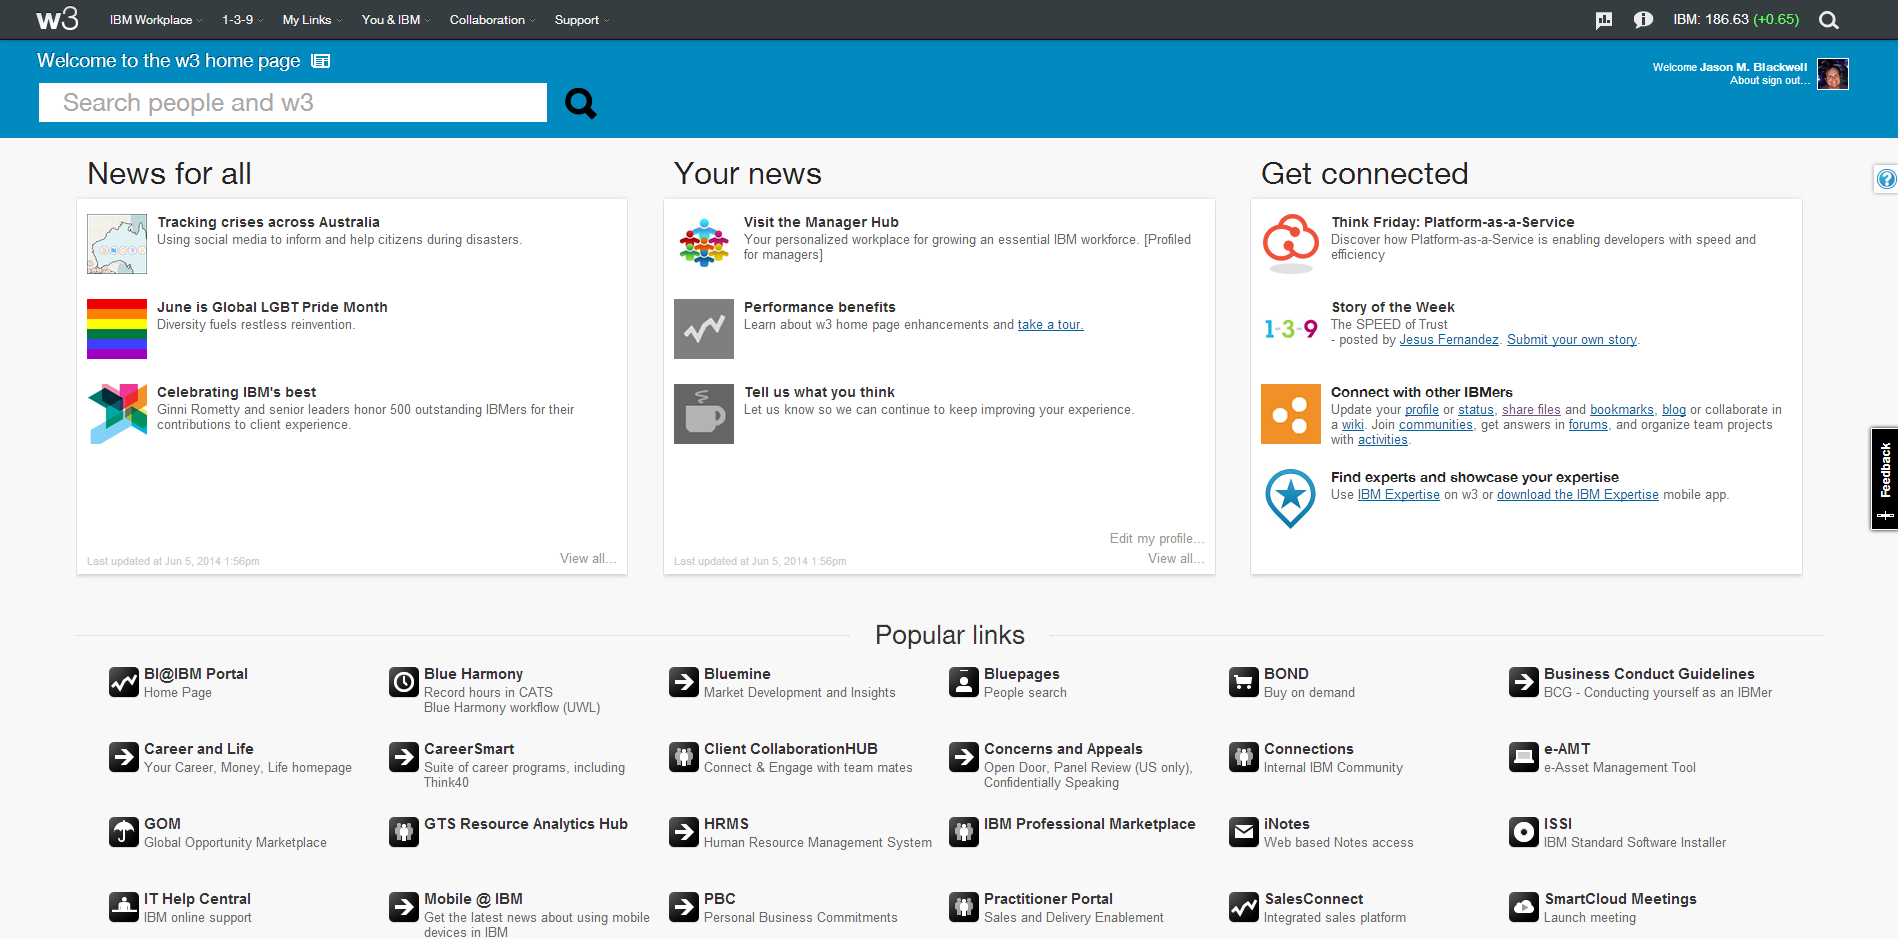 Ibm Intranet Home Page W3 June 2014 Png 1 898 939 Pixels Search People Screenshots